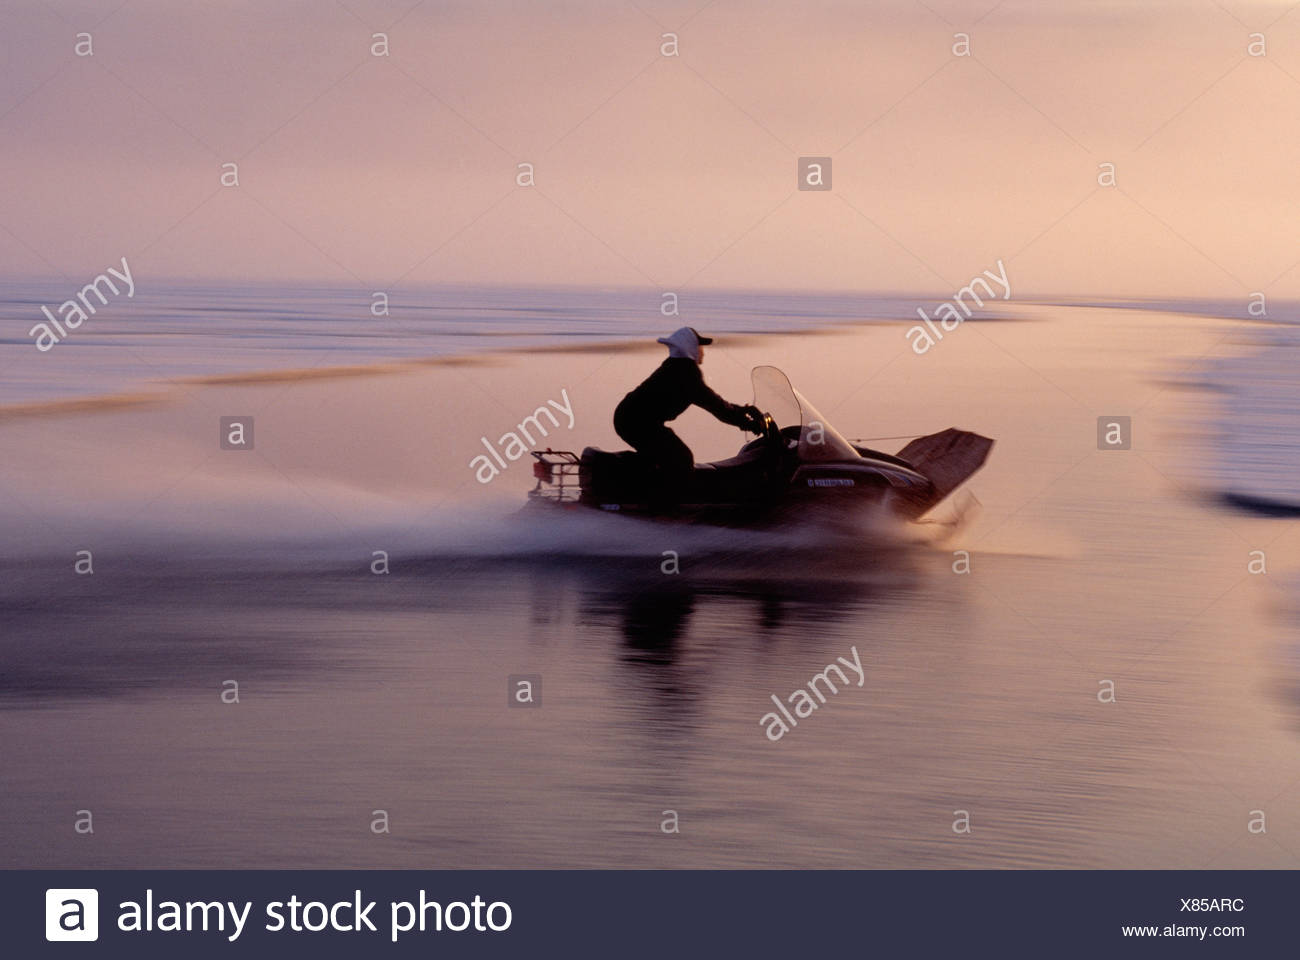 Inuit hunter snowmobile driving over open water, Baffin Island, Nunavut, Canada. - Stock Image